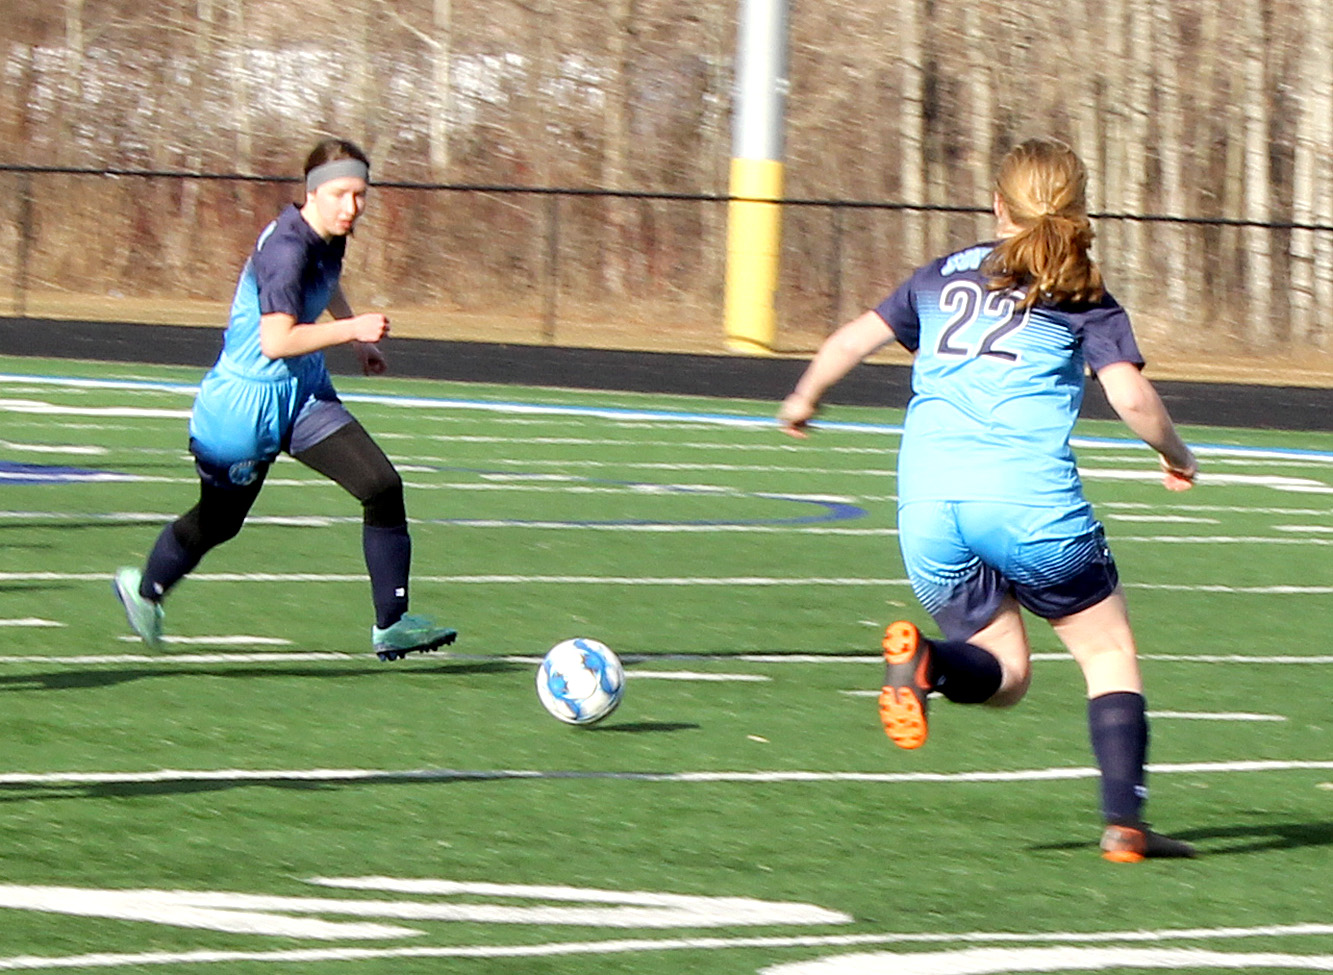 Senior Amelia Evavold (left) moves the ball up the field in a game earlier this season while freshman Lily Walrath (22) gets into position. Superior beat Chippewa Falls 4-1 at the NBC Spartan Sports Complex May 25 in the first round of the Wisconsin Interscholastic Athletic Association playoffs, and will play Kimberly tonight in Wausau at 5 p.m.